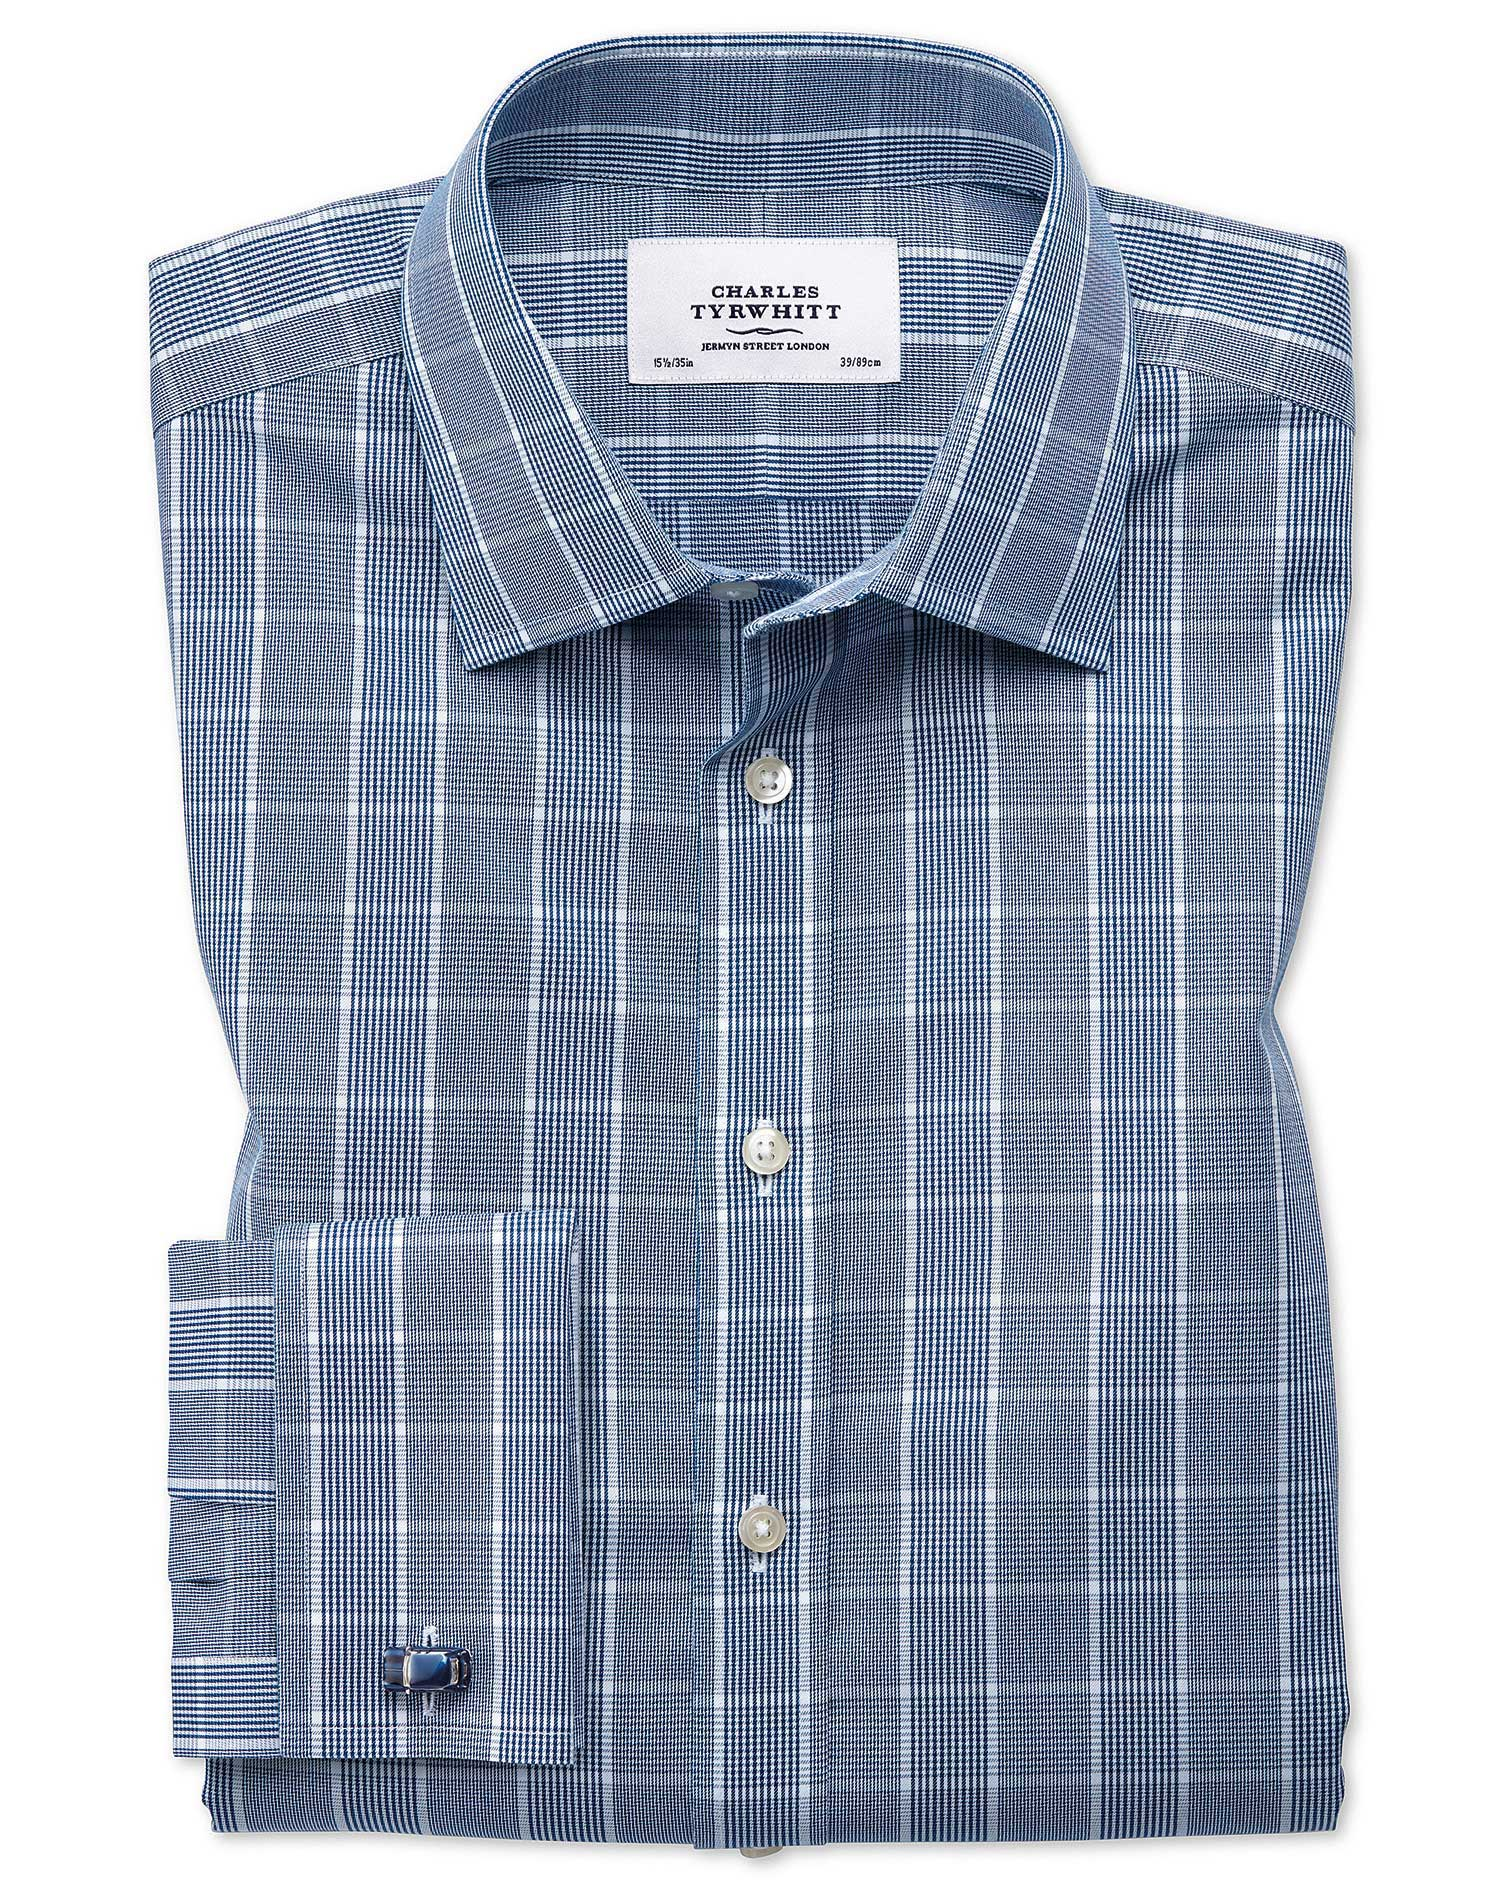 Slim Fit Non-Iron Prince Of Wales Navy Blue and White Cotton Formal Shirt Double Cuff Size 17/34 by